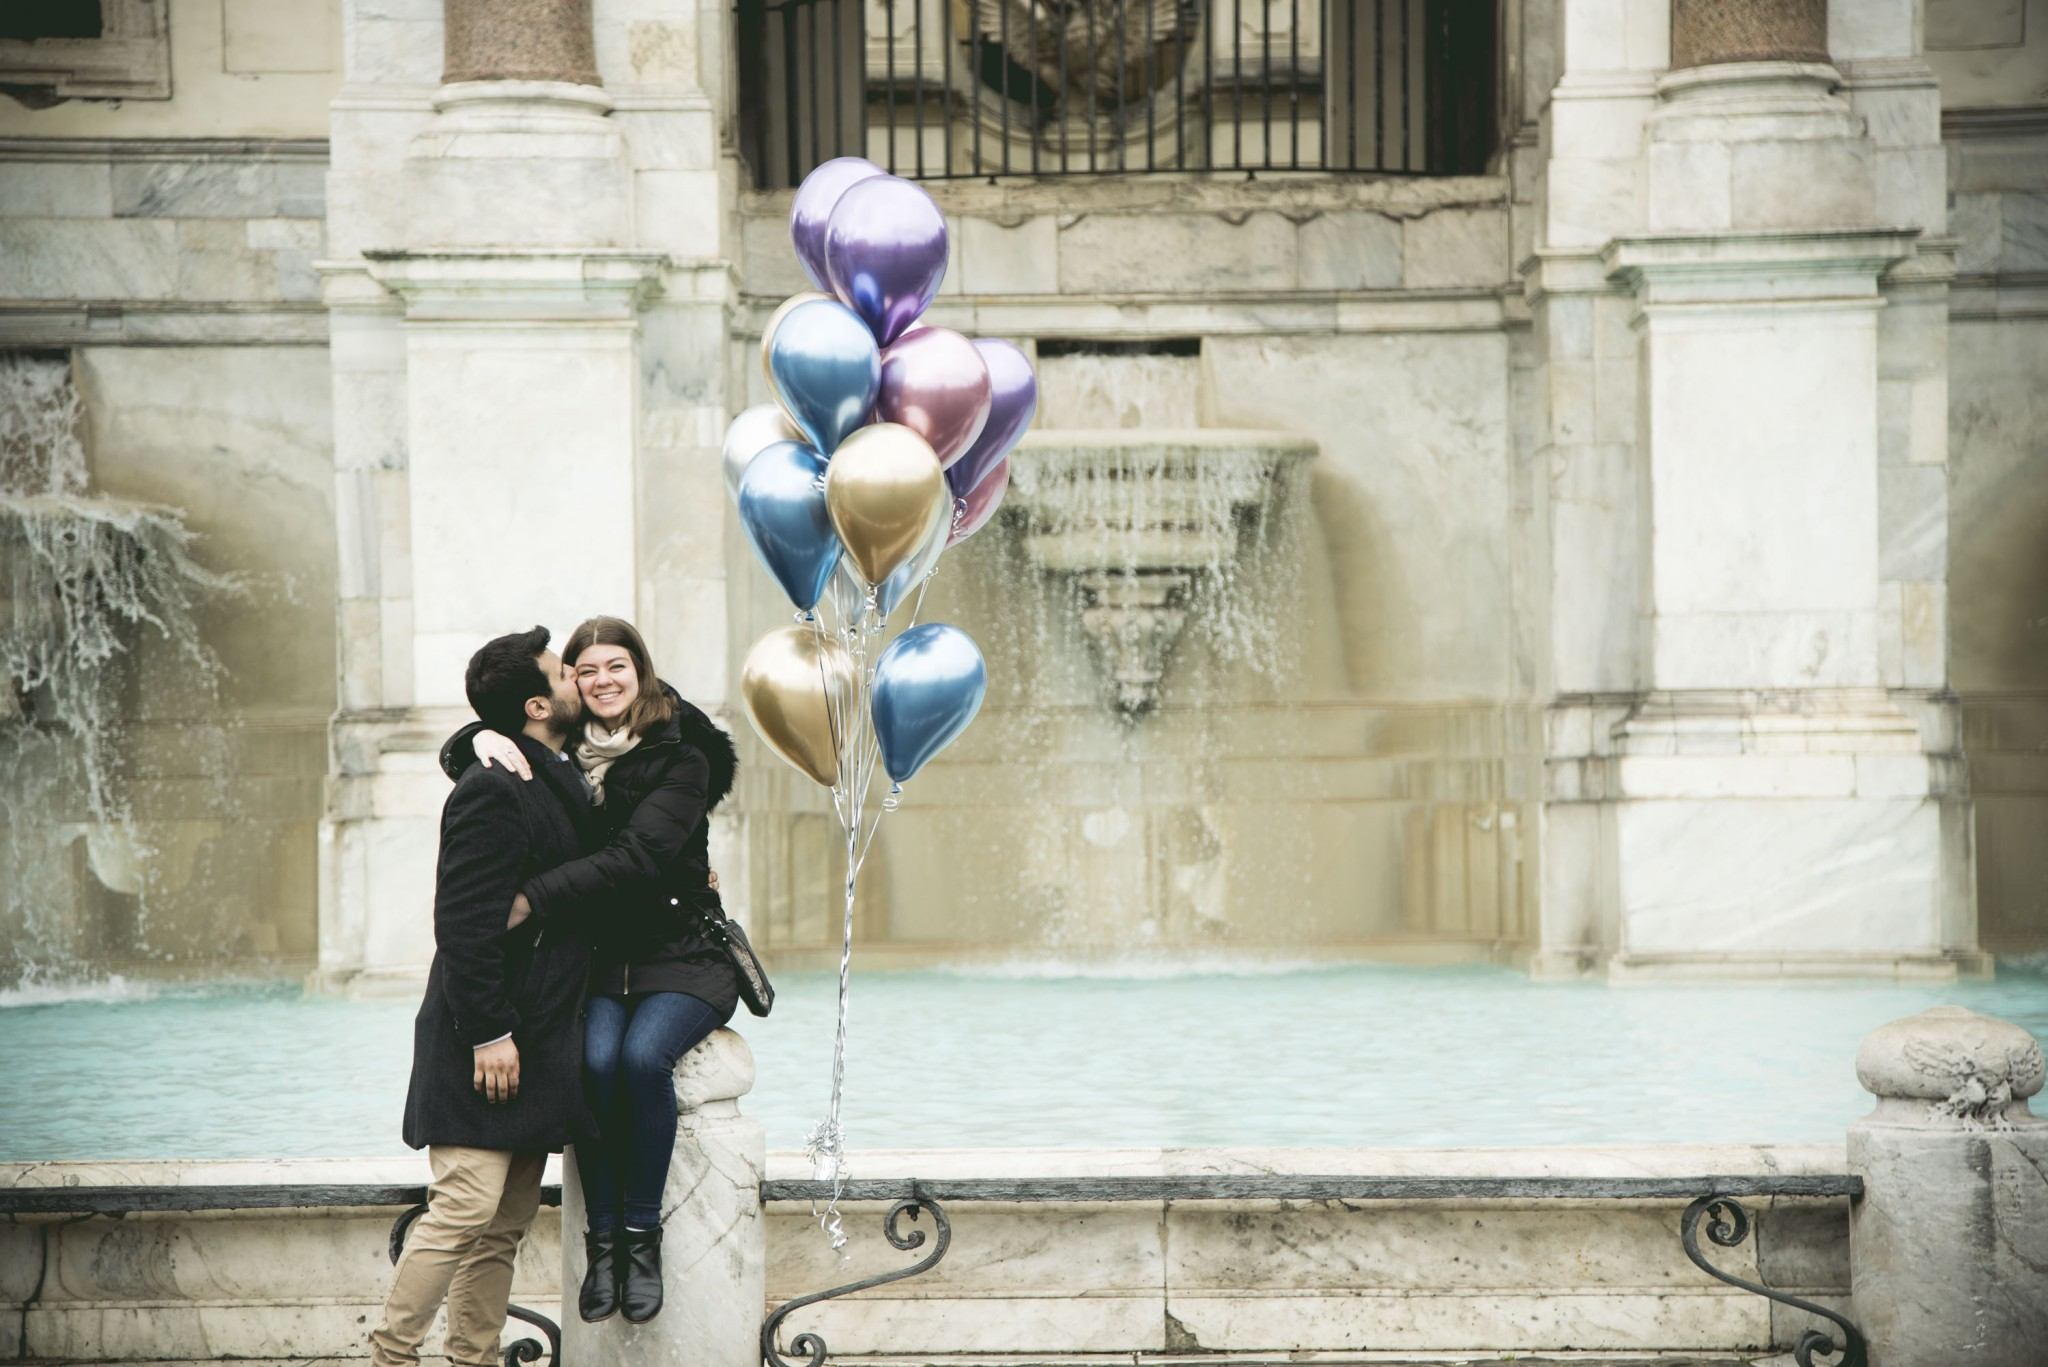 Balloons marriage proposal Rome